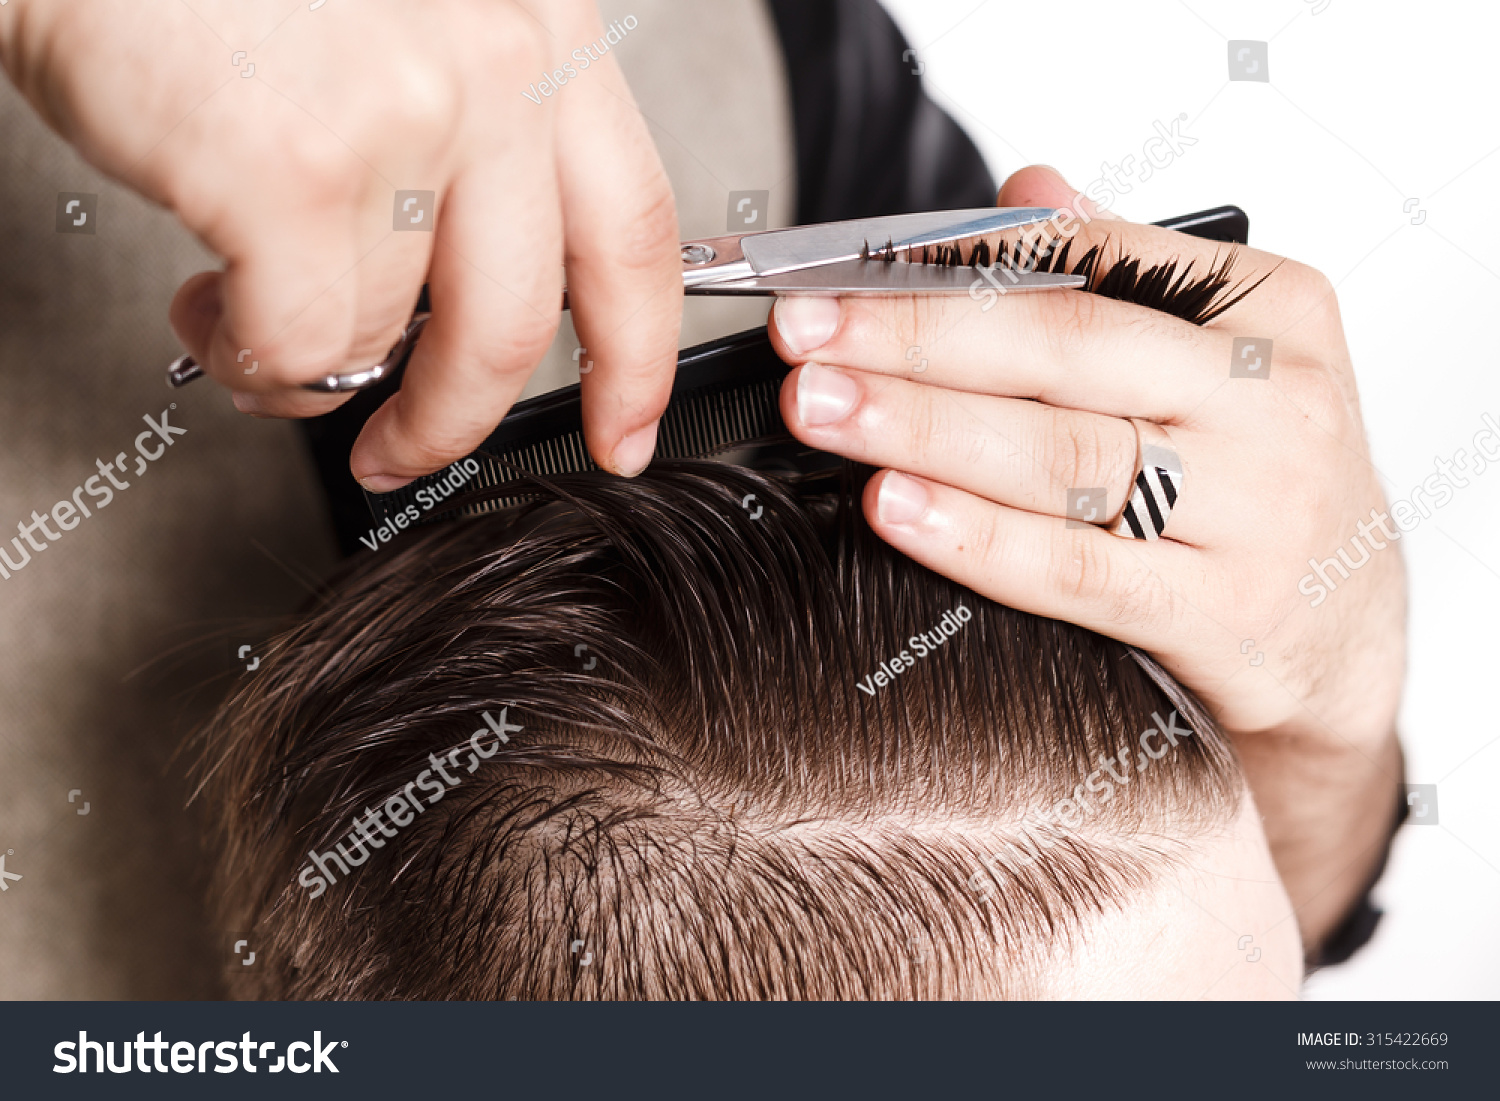 Hairdresser Cuts Hair Scissors Black Comb Stock Photo (Edit Now